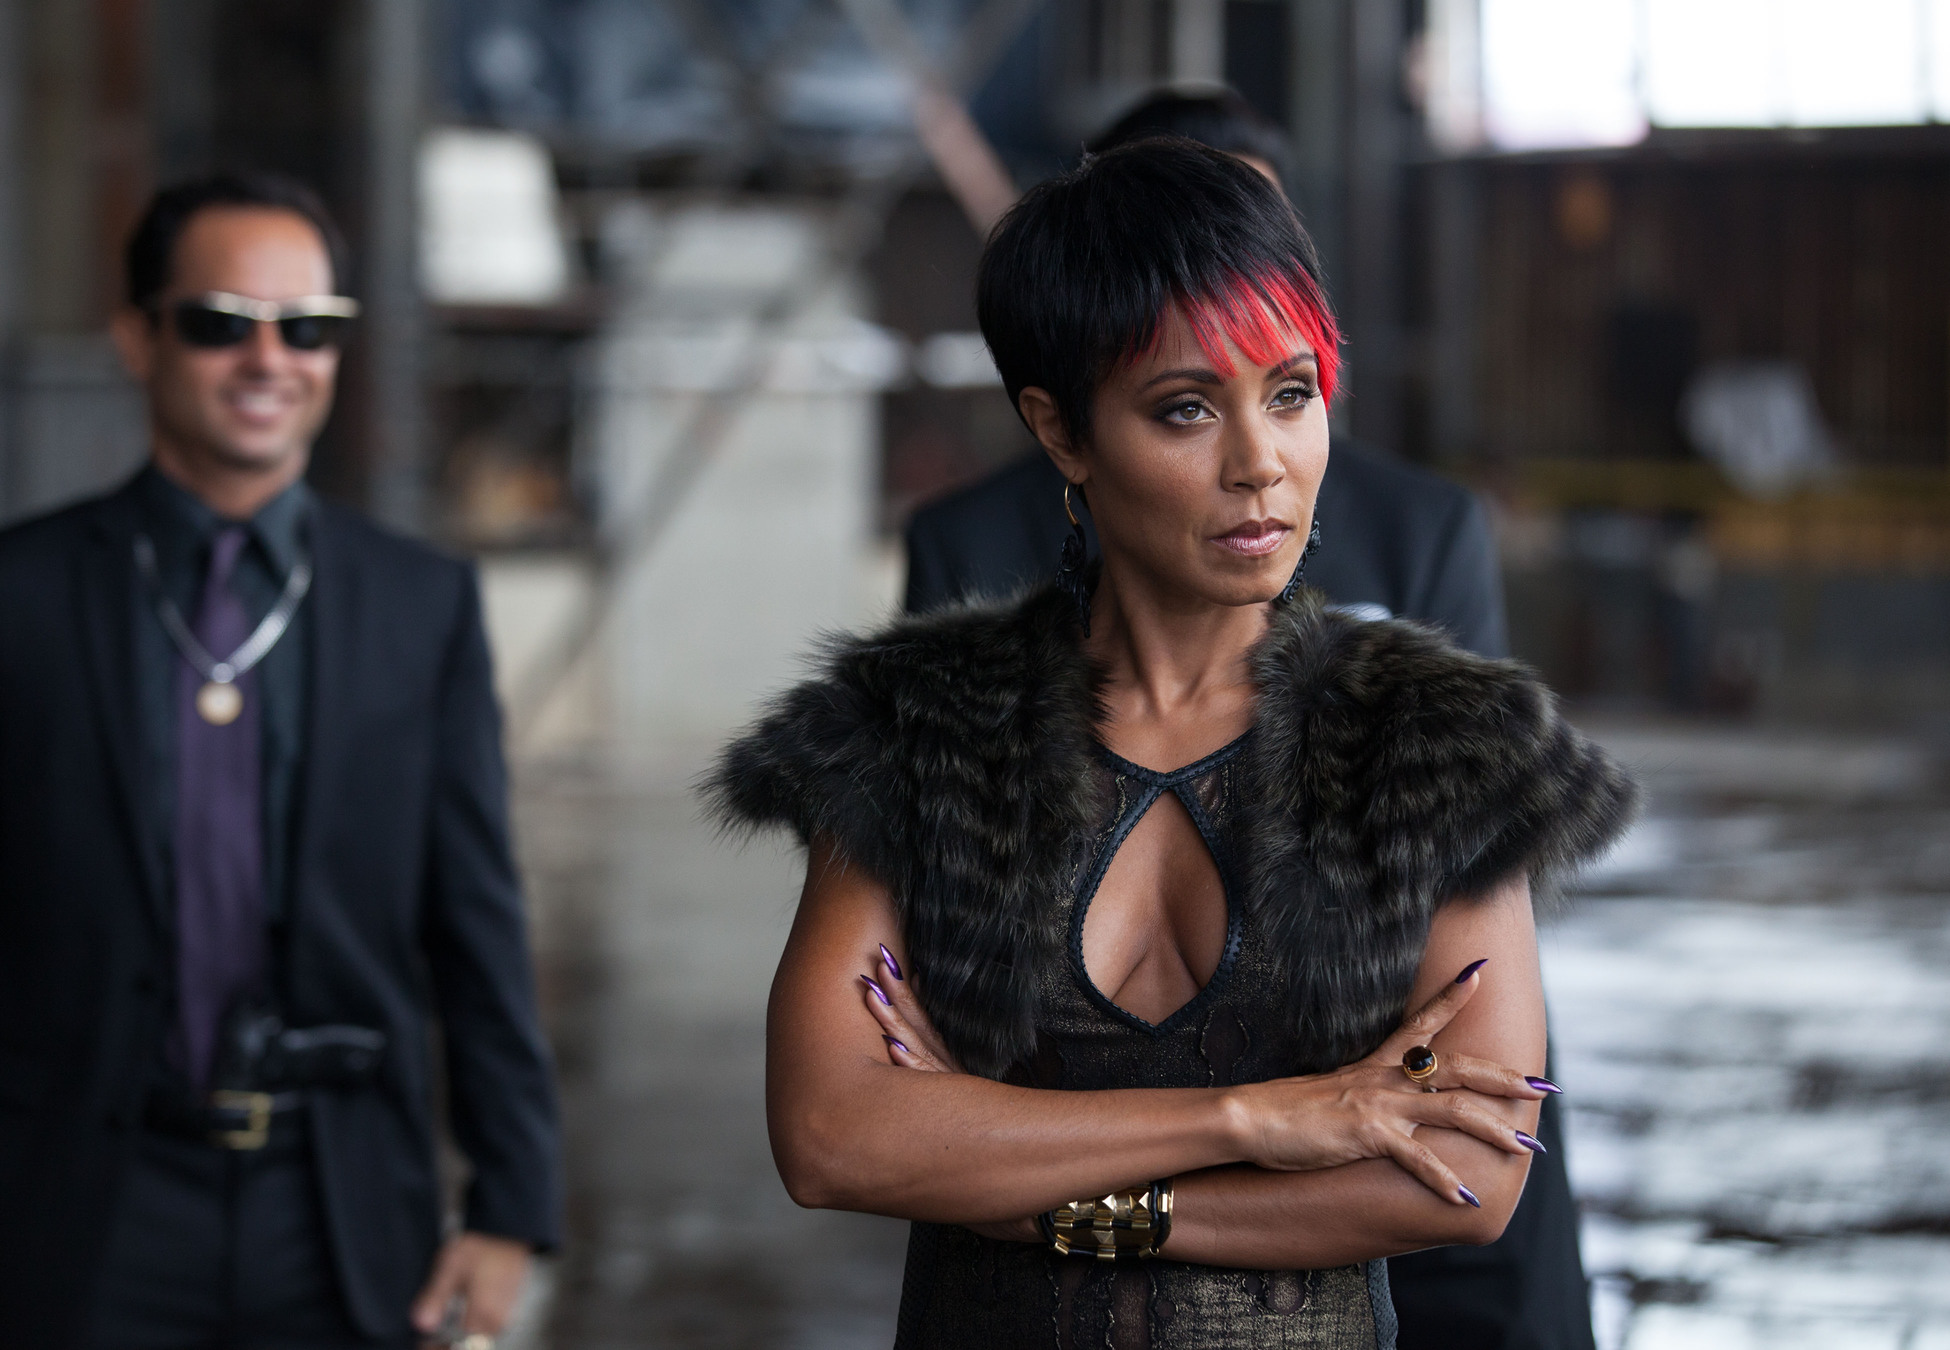 """GOTHAM: Fish (Jada Pinkett Smith) meets with business associates in the """"Viper"""" episode of GOTHAM airing Monday, Oct. 20 (8:00-9:00 PM ET/PT) on FOX. ©2014 Fox Broadcasting Co. Cr: Jessica Miglio/FOX"""